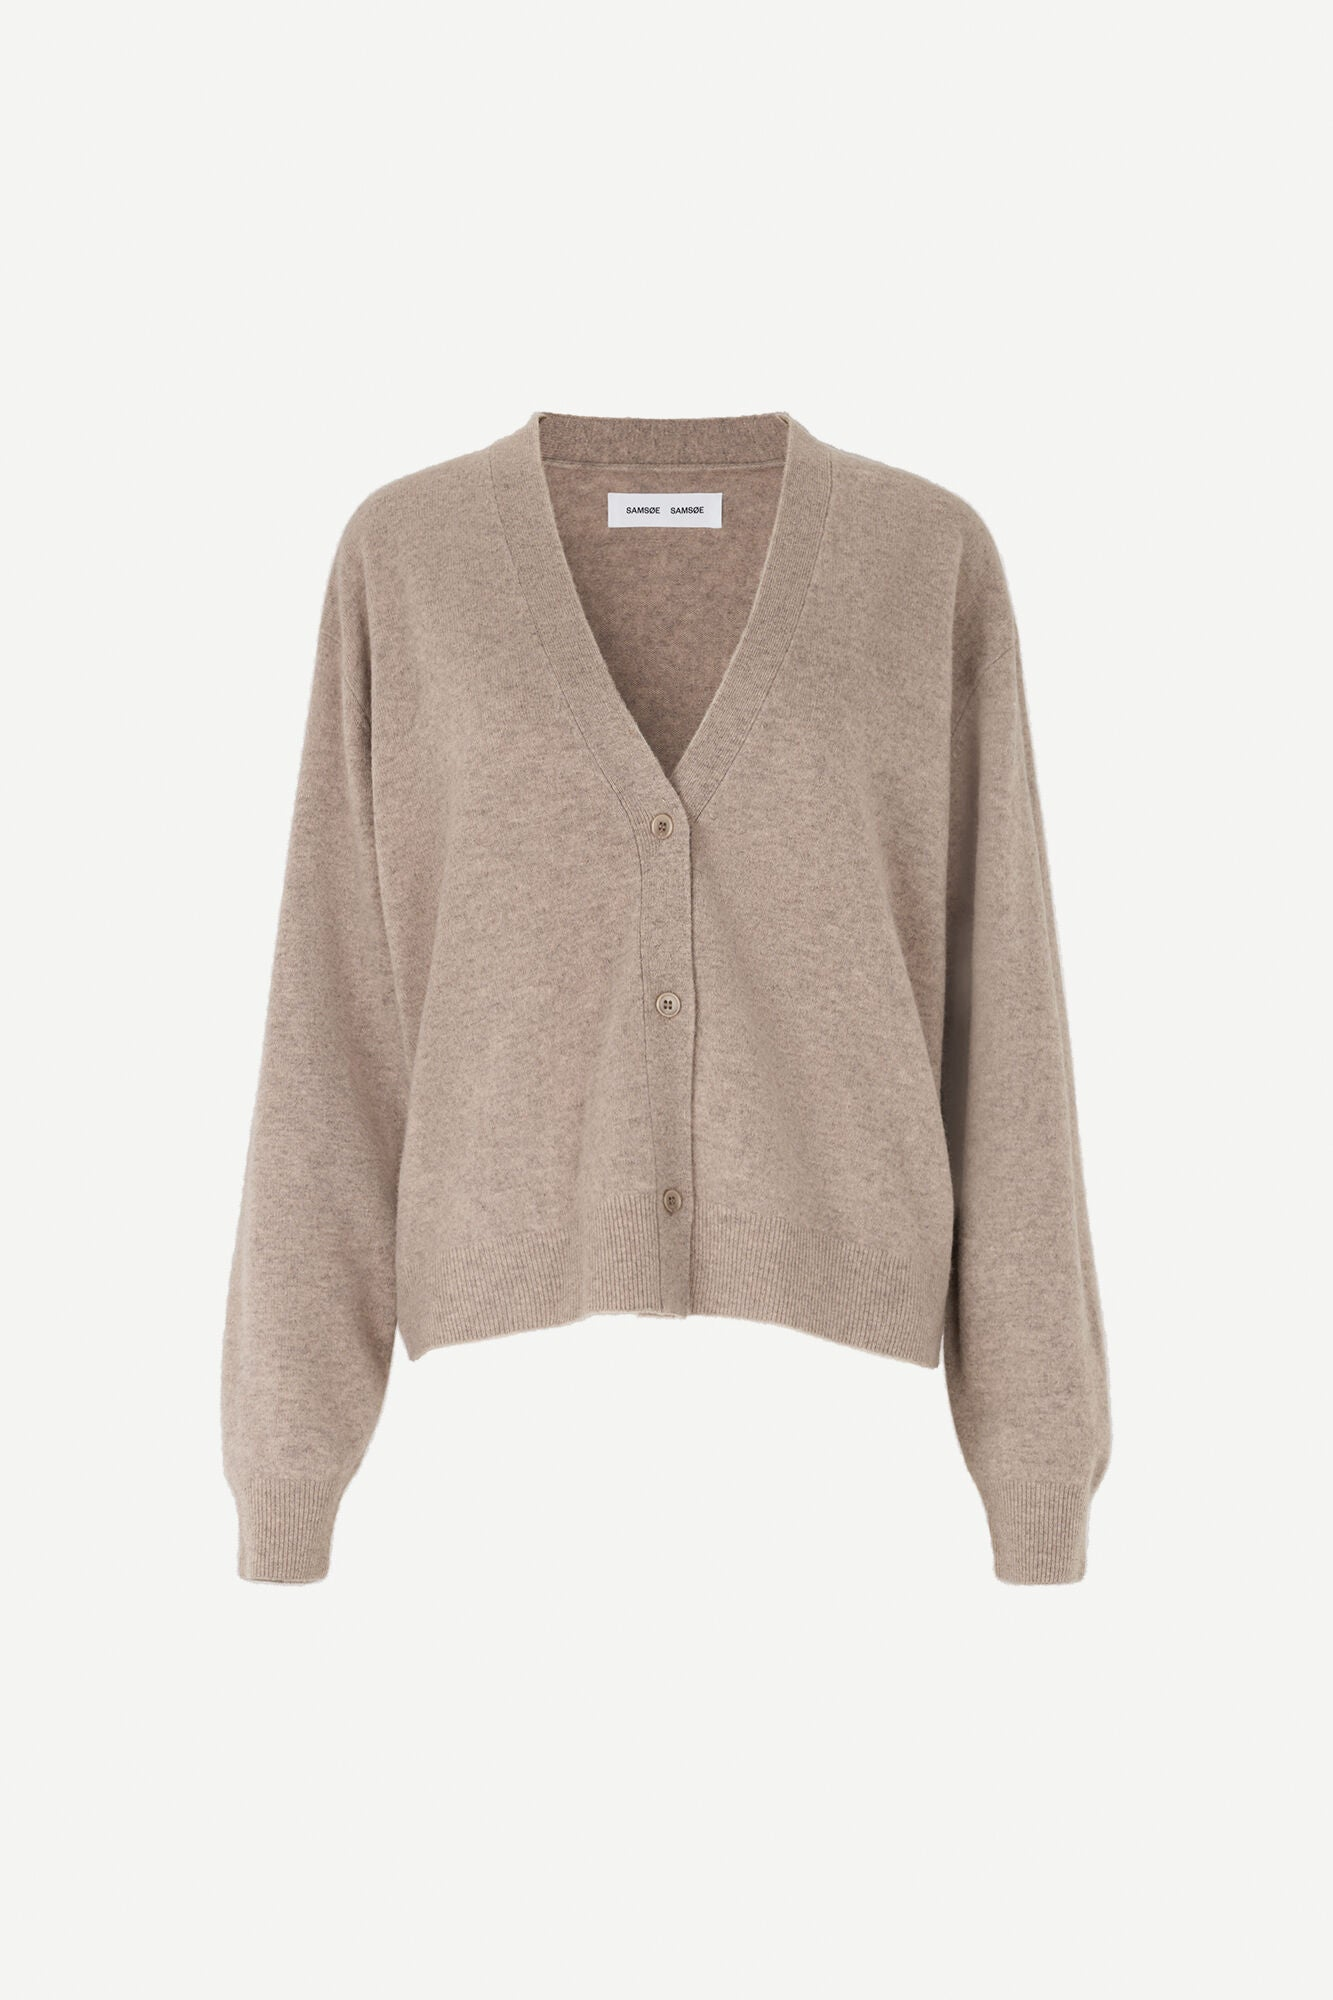 SHORT OVERSIZED CARDIGAN IN WARM GREY